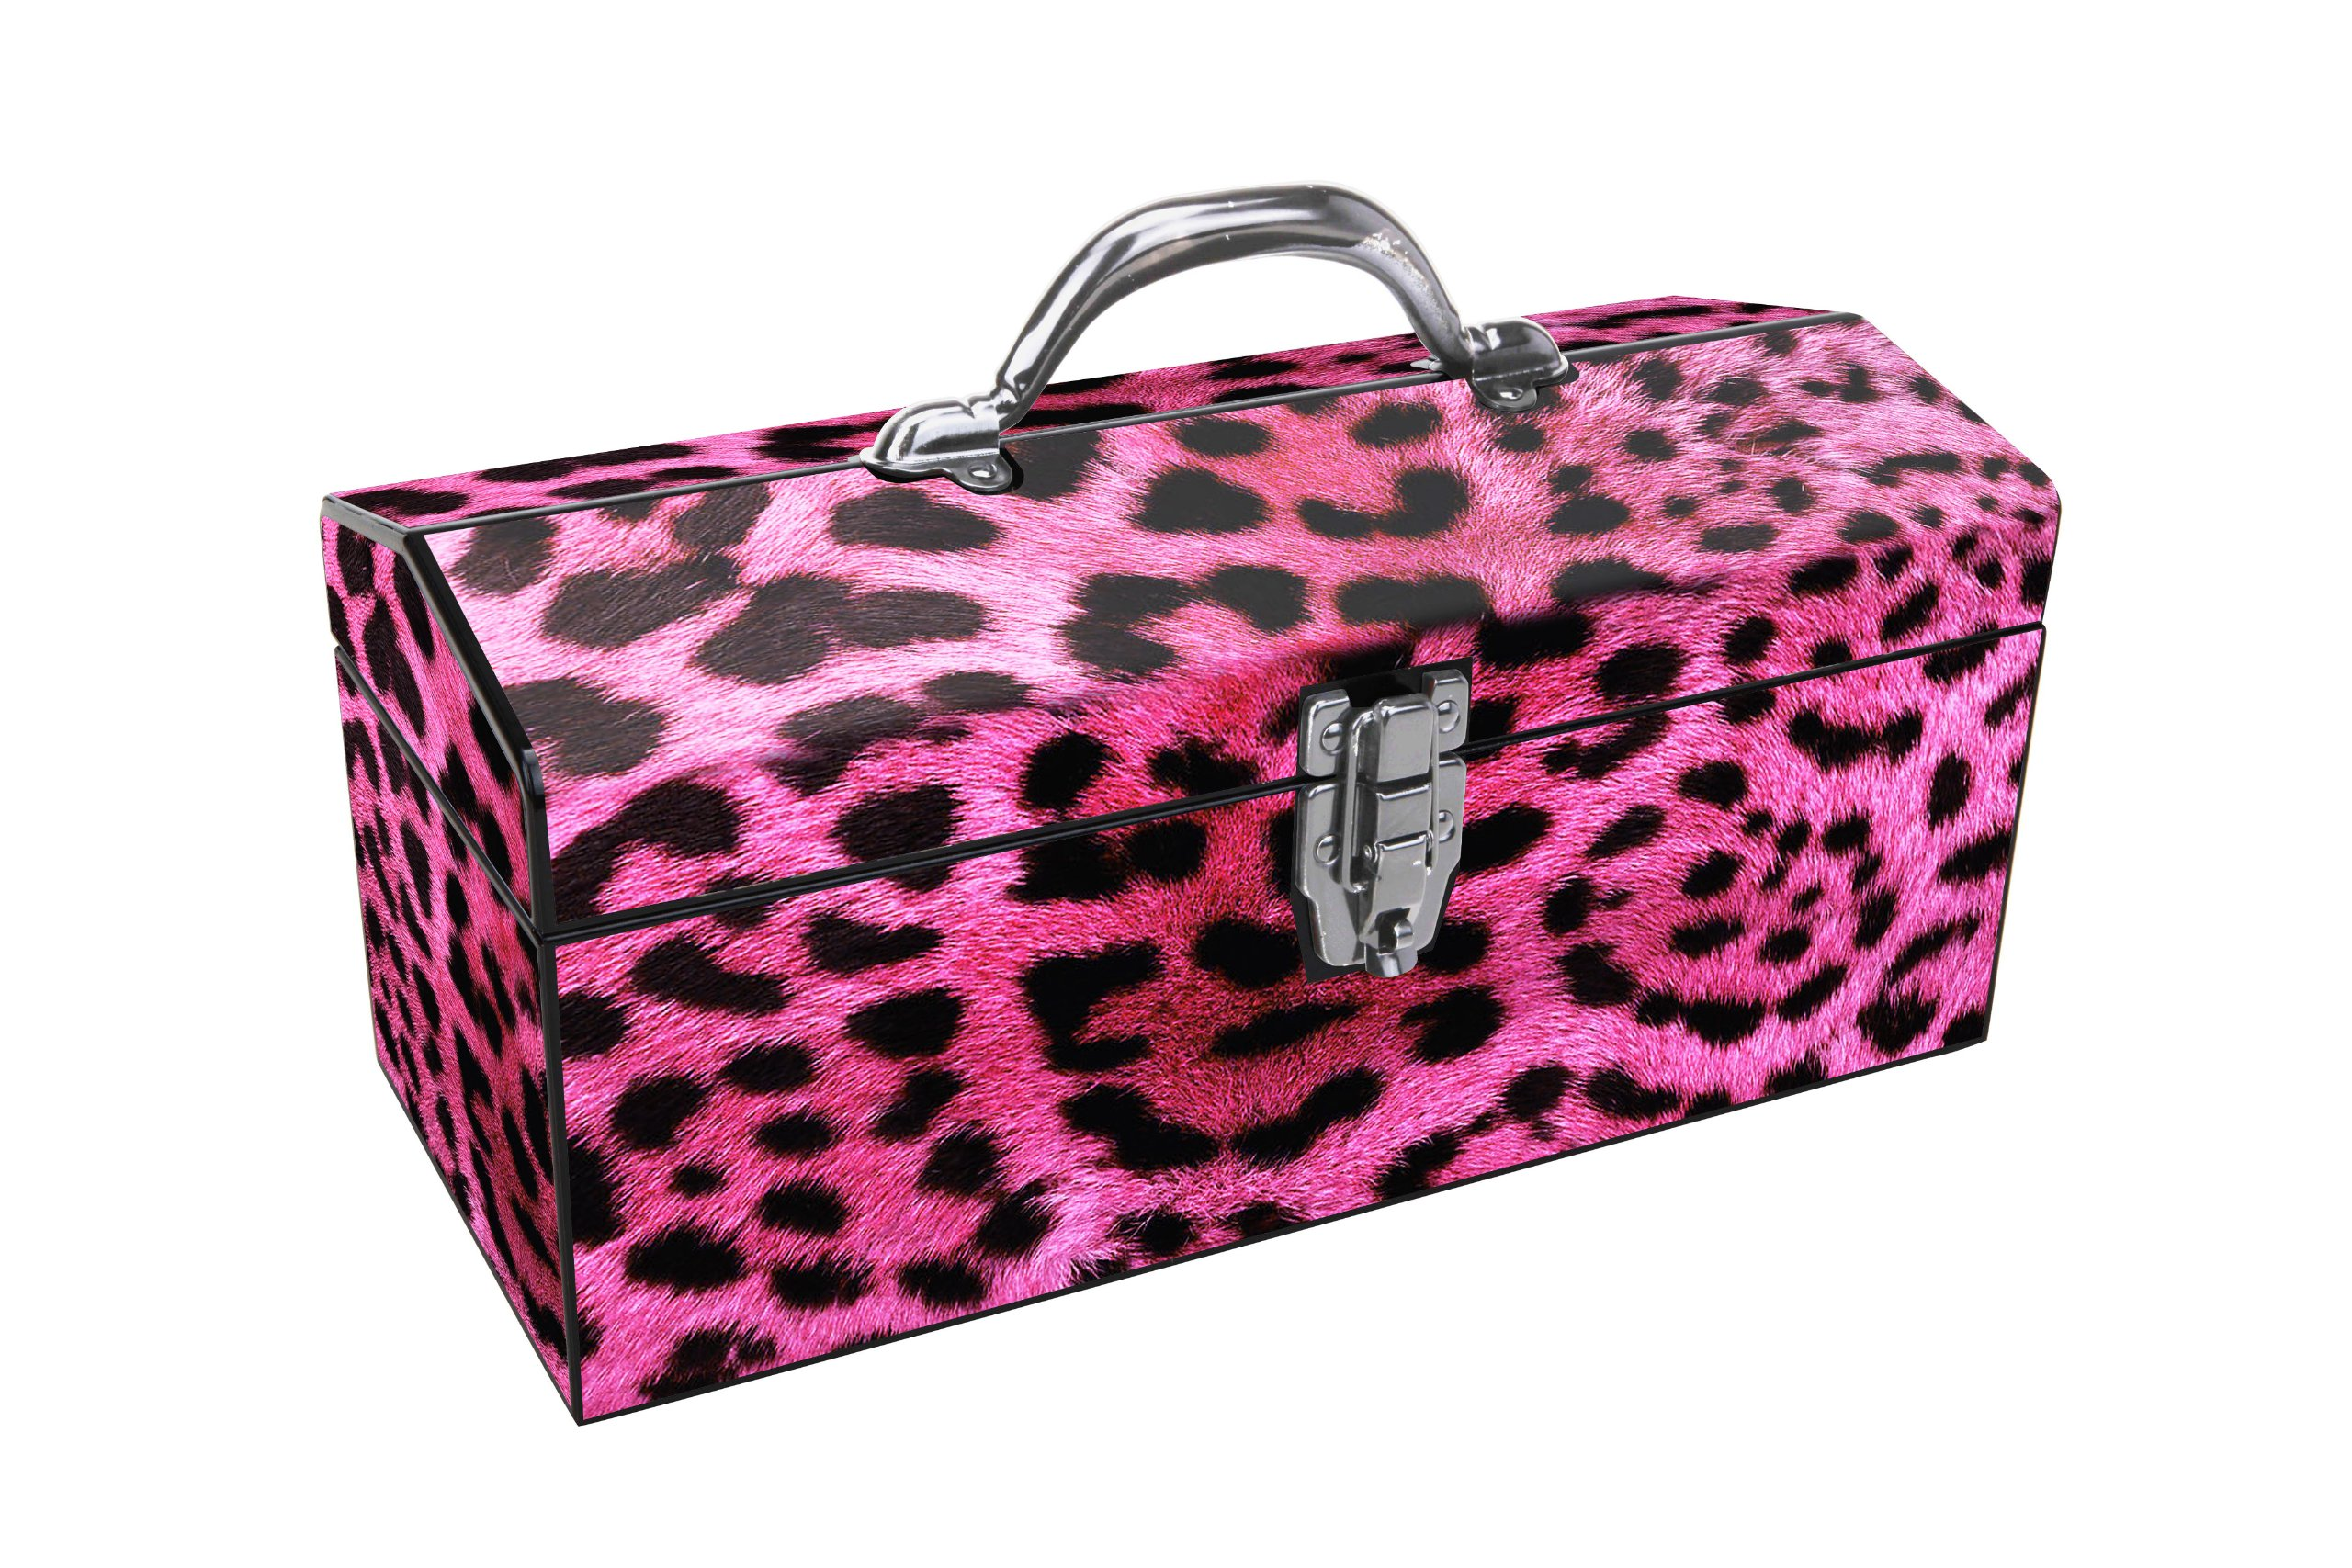 Sainty Art Works 24-033 Art Deco Leopard Tool Box, Pink